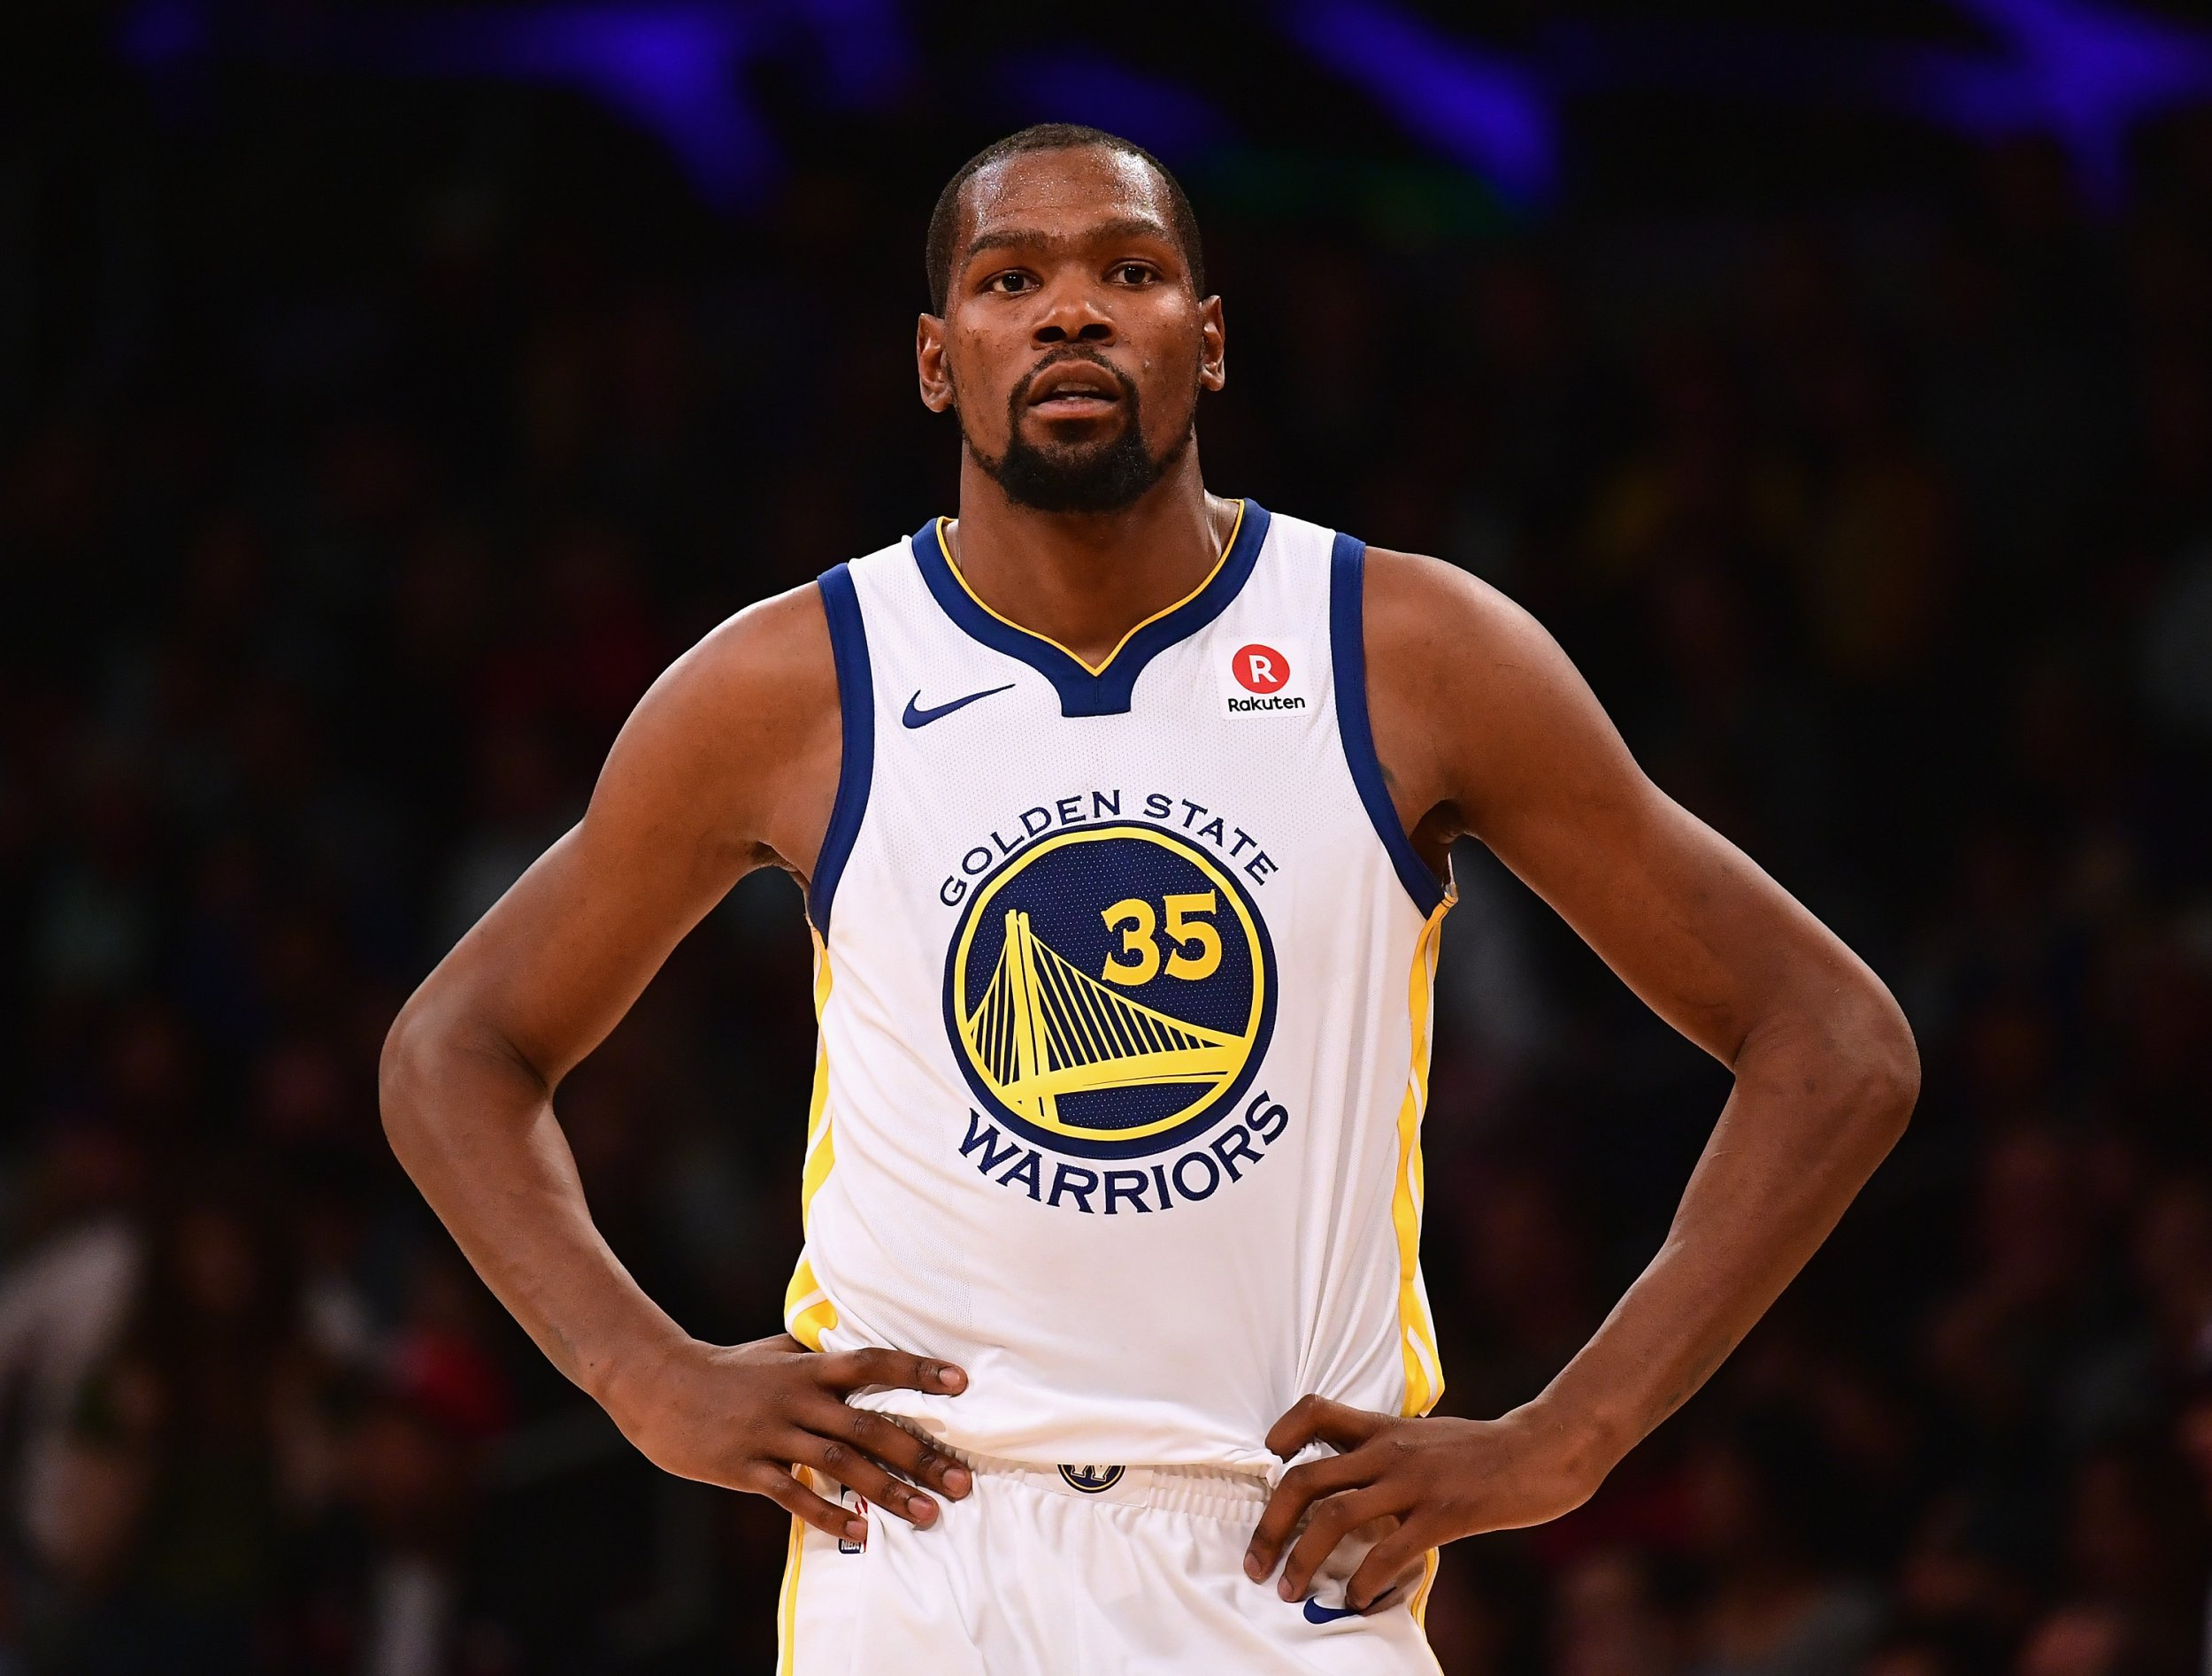 watch-kevin-durant-got-tossed-from-warriors-pelicans-is-bad-behavior-golden-state-s-new-normal